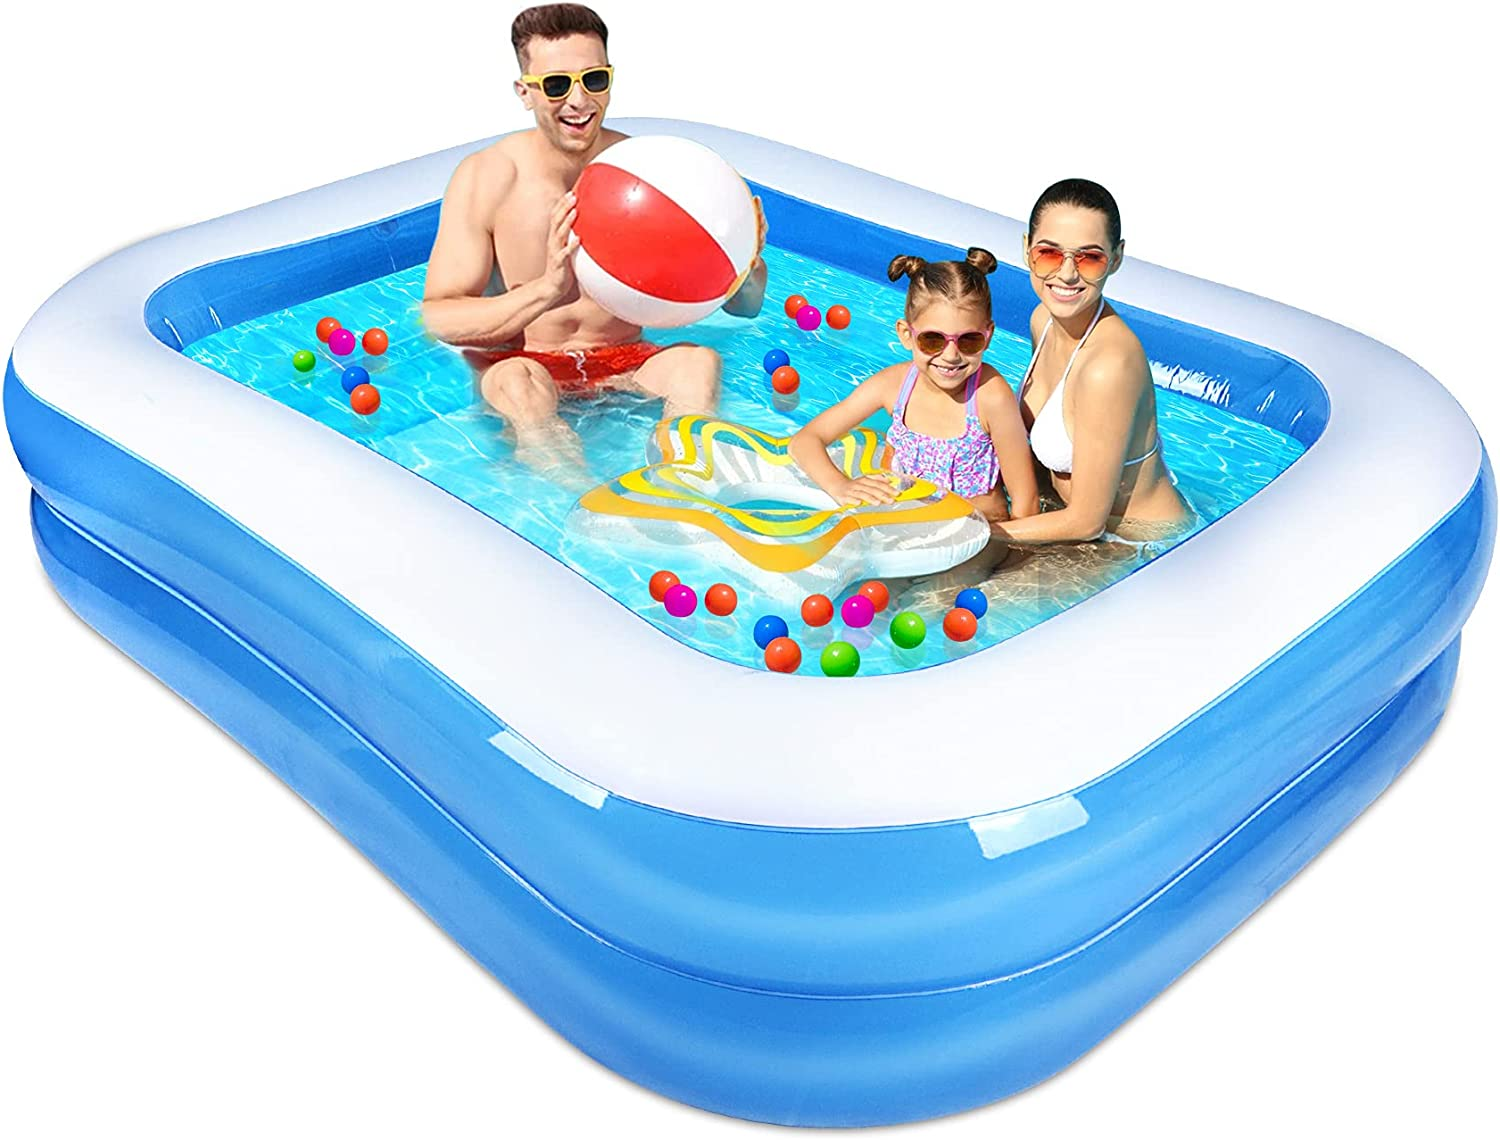 Apsung 人気ブレゼント Inflatable Swimming Pool 新作製品、世界最高品質人気! Family for Blow Kiddie Up